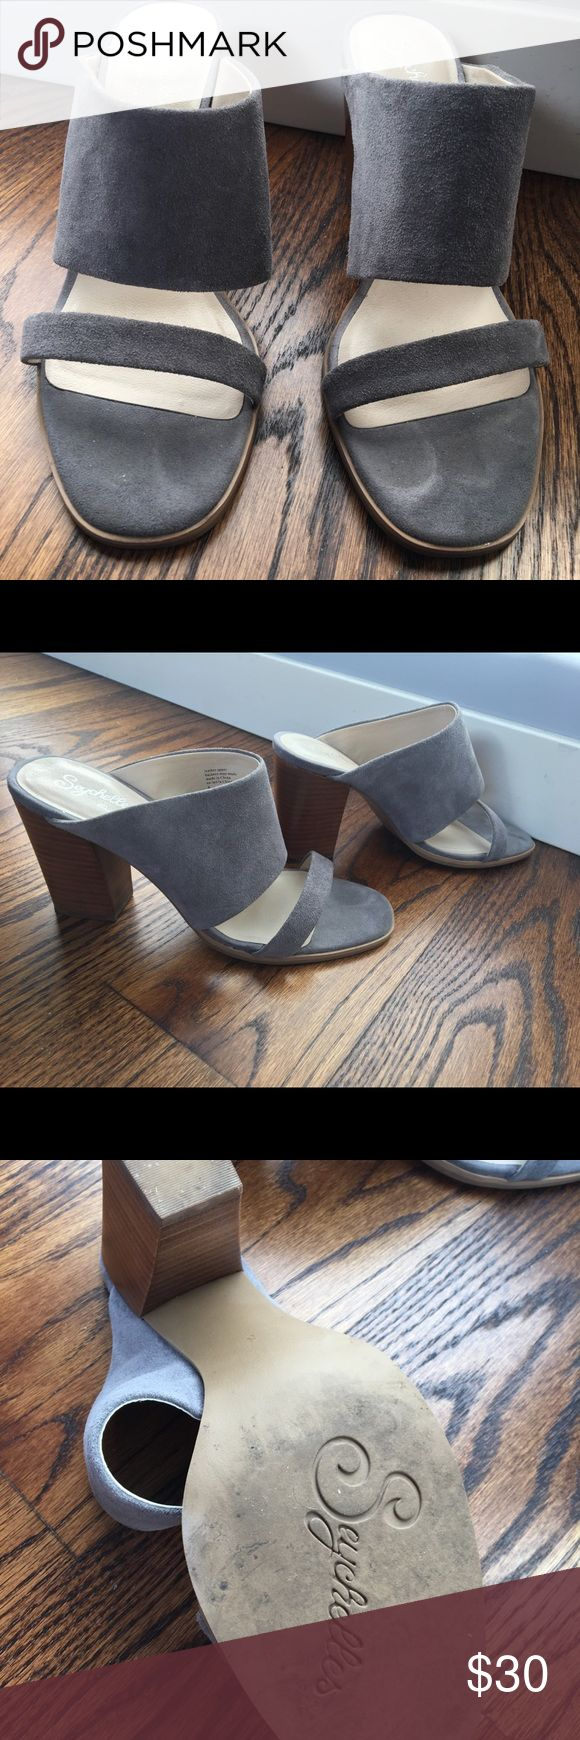 Seychelles - Grey Slides Super cute slides in grey suede, perfect for jeans and a cute top! Seychelles Shoes Sandals